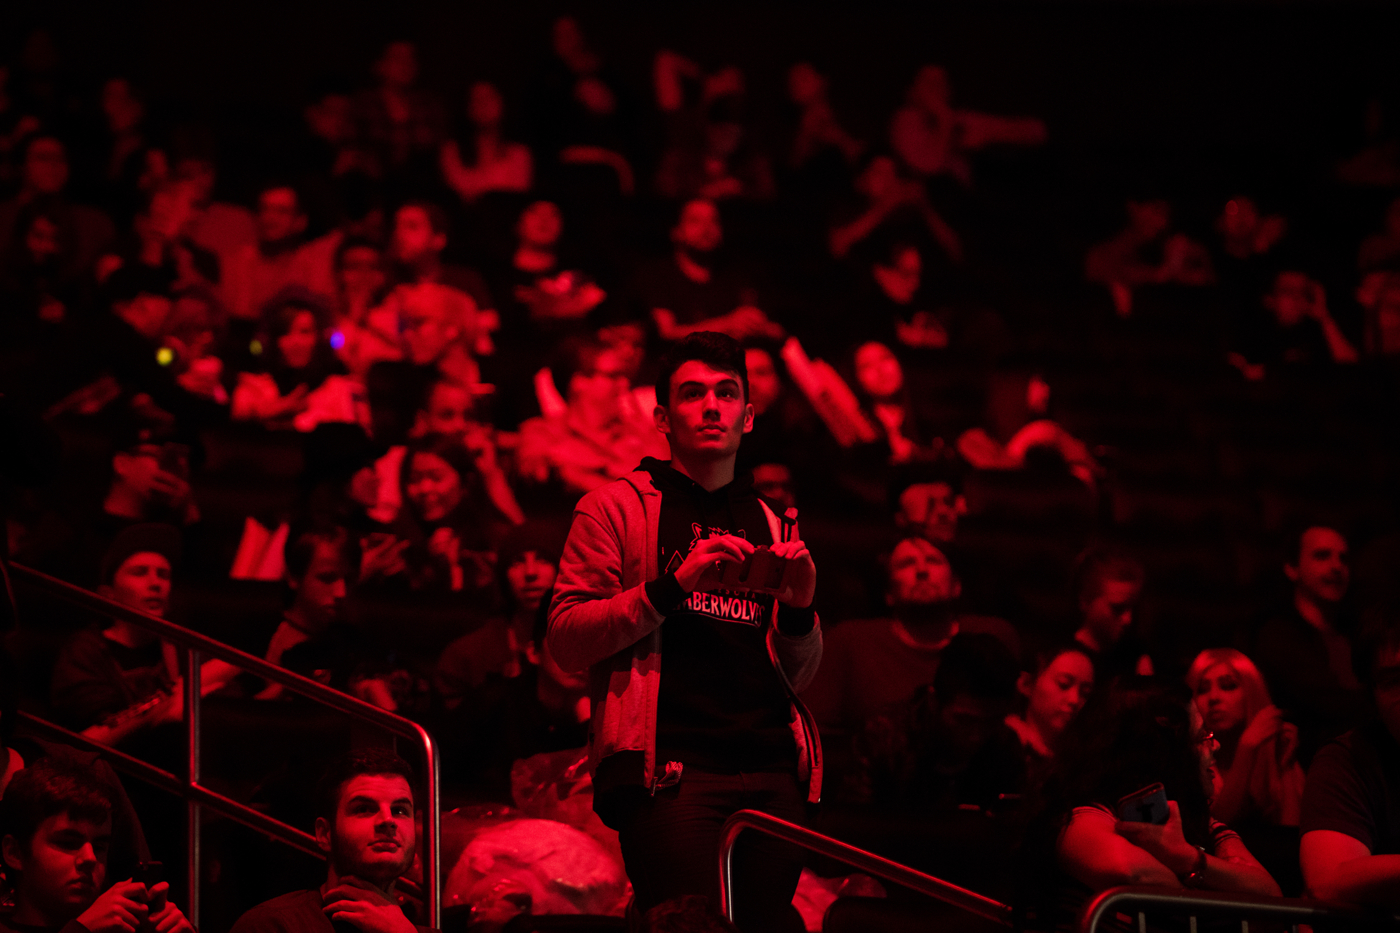 A fan goes to take a photo at Madison Square Garden.